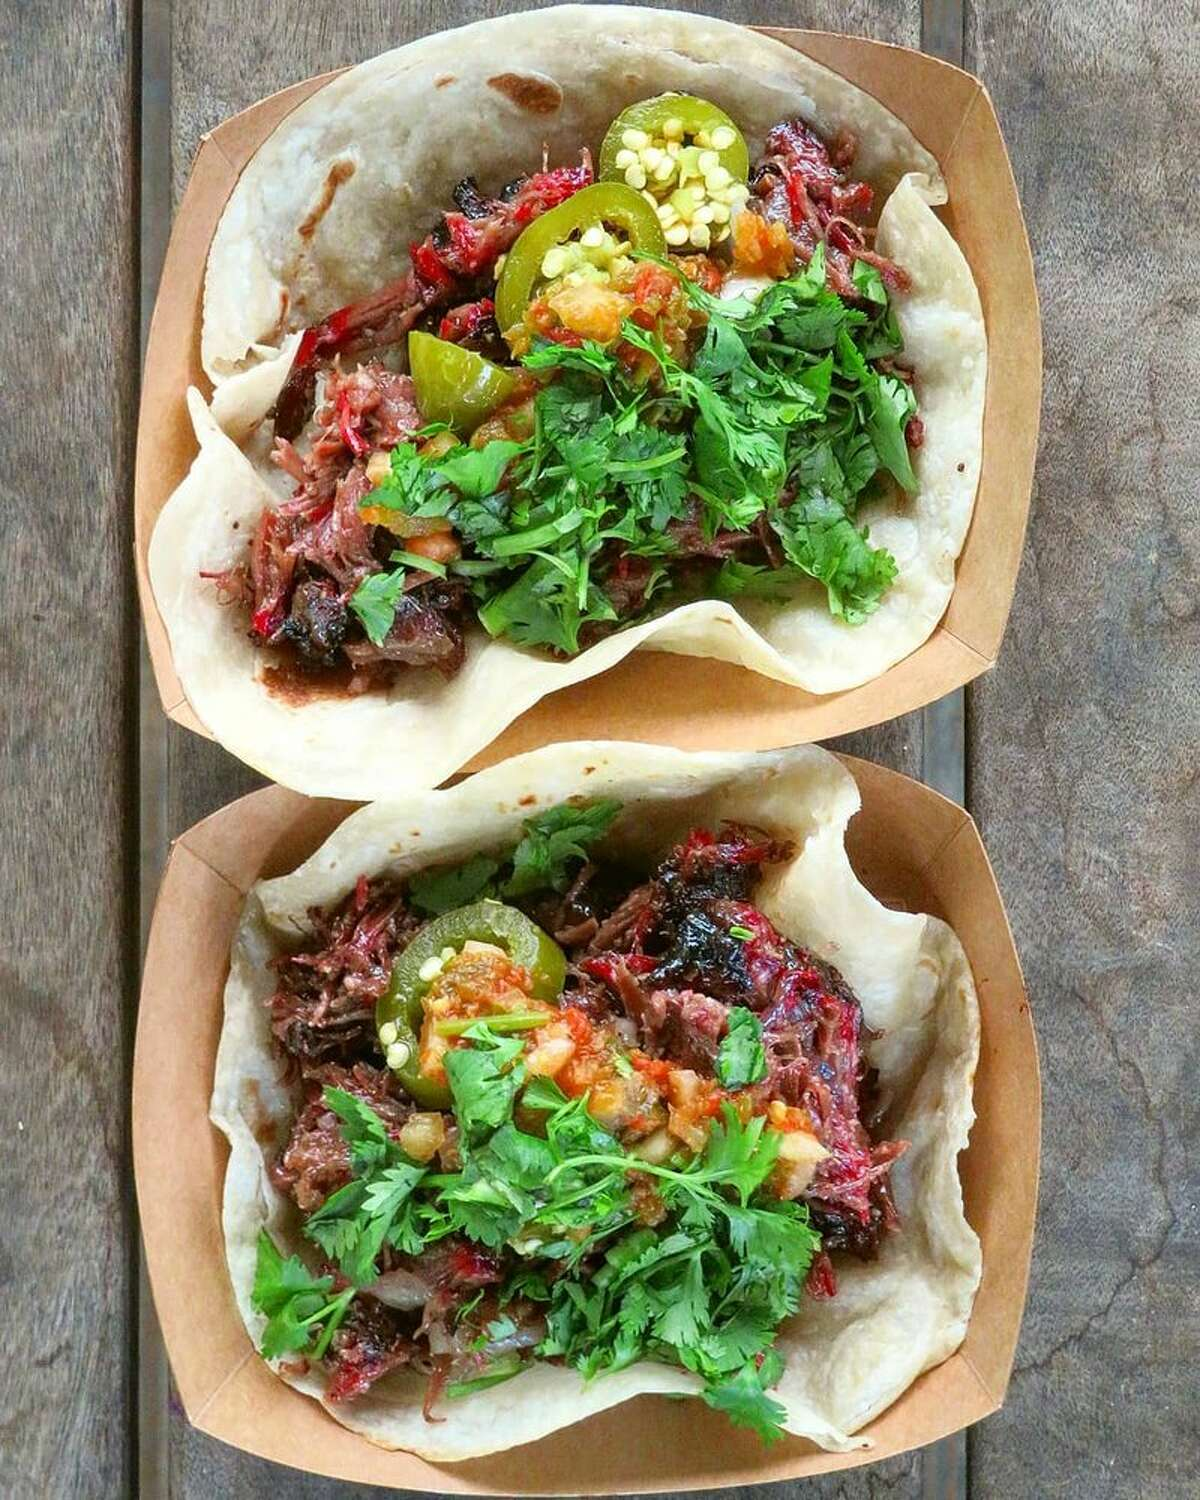 Eddie O's Texas Barbecue has been on the Houston food scene for only two years but already has established a loyal following for craft barbecue and smoked meat tacos. He currently serves most Saturdays at D& Drive Inn.